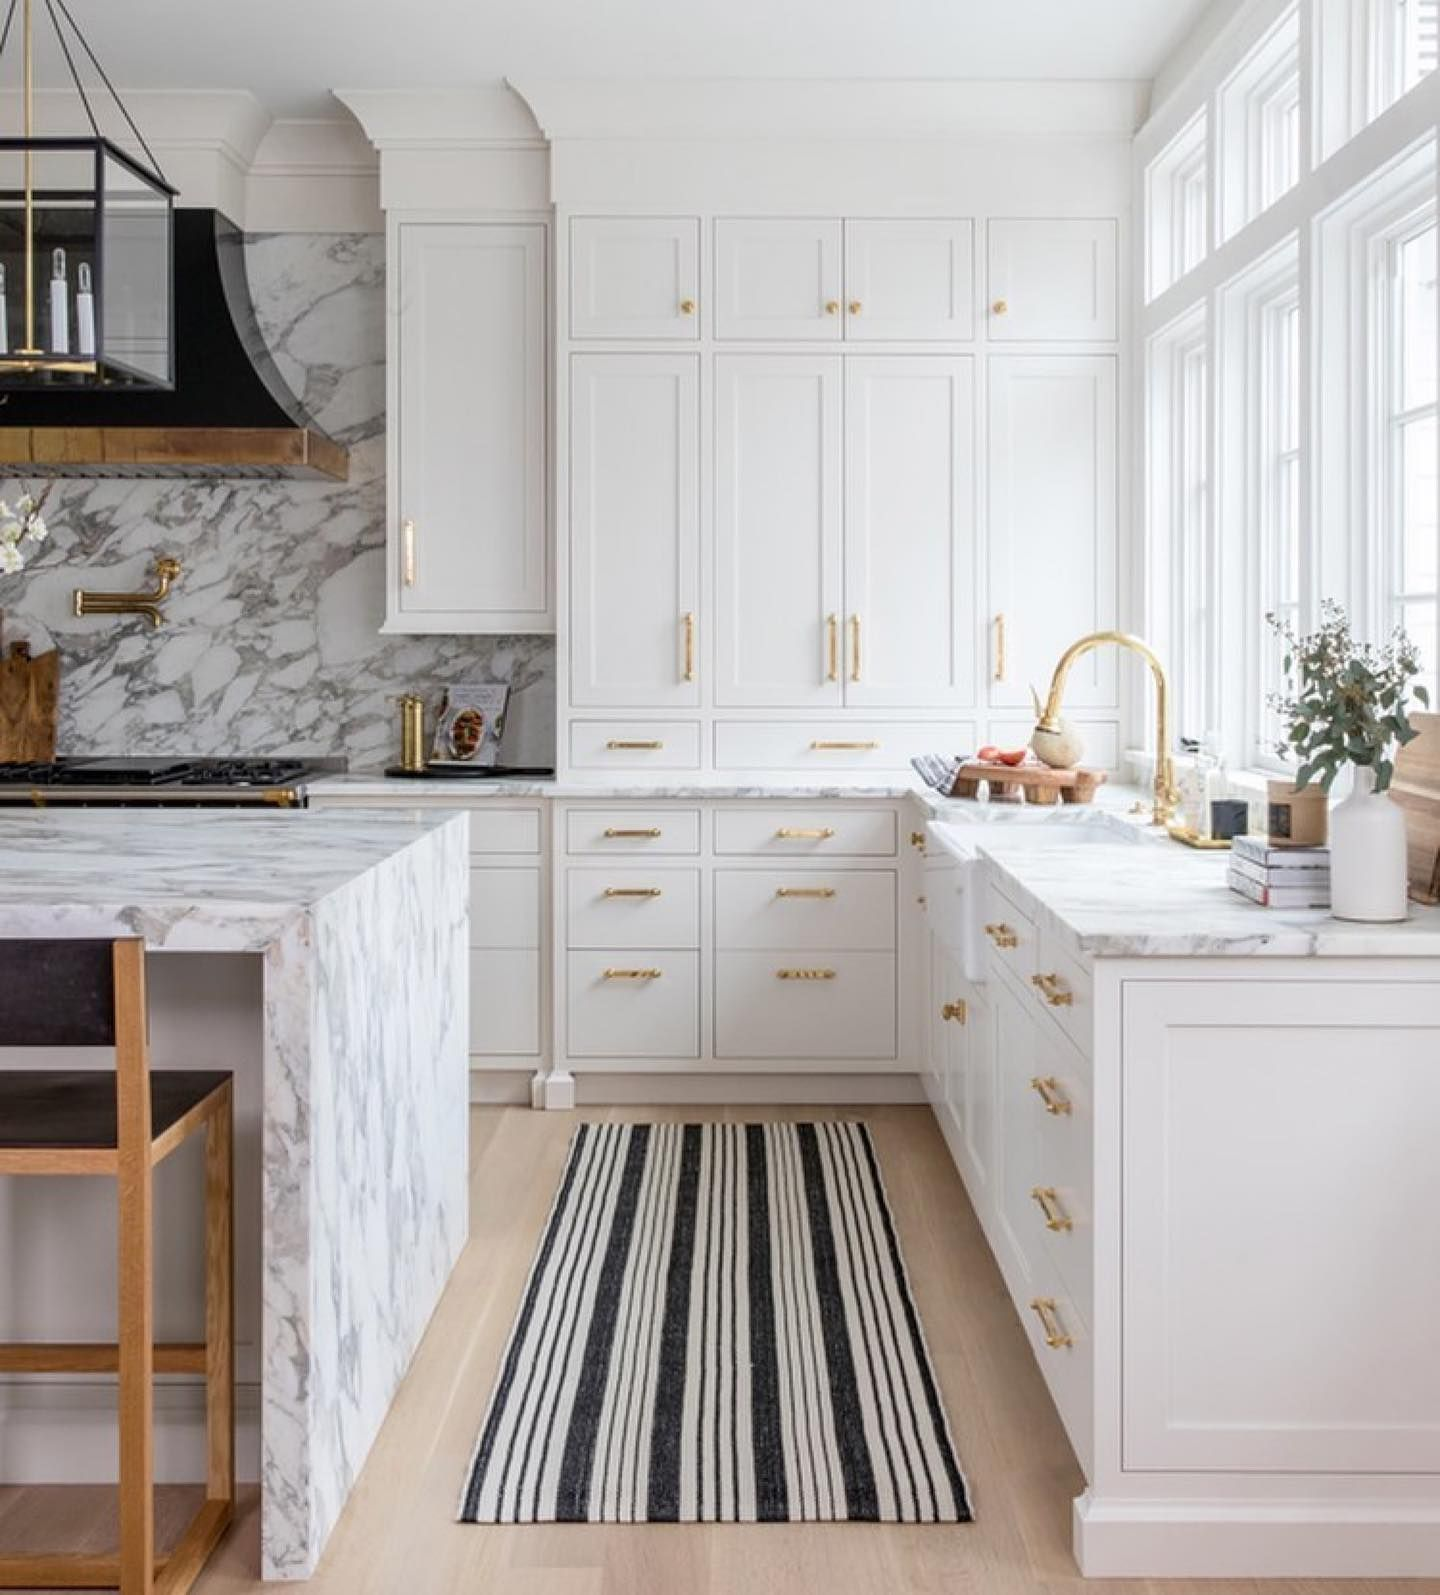 10 Ways To Freshen Up Right Now In 2020 Kitchen Interior Cheap Home Decor Kitchen Inspirations